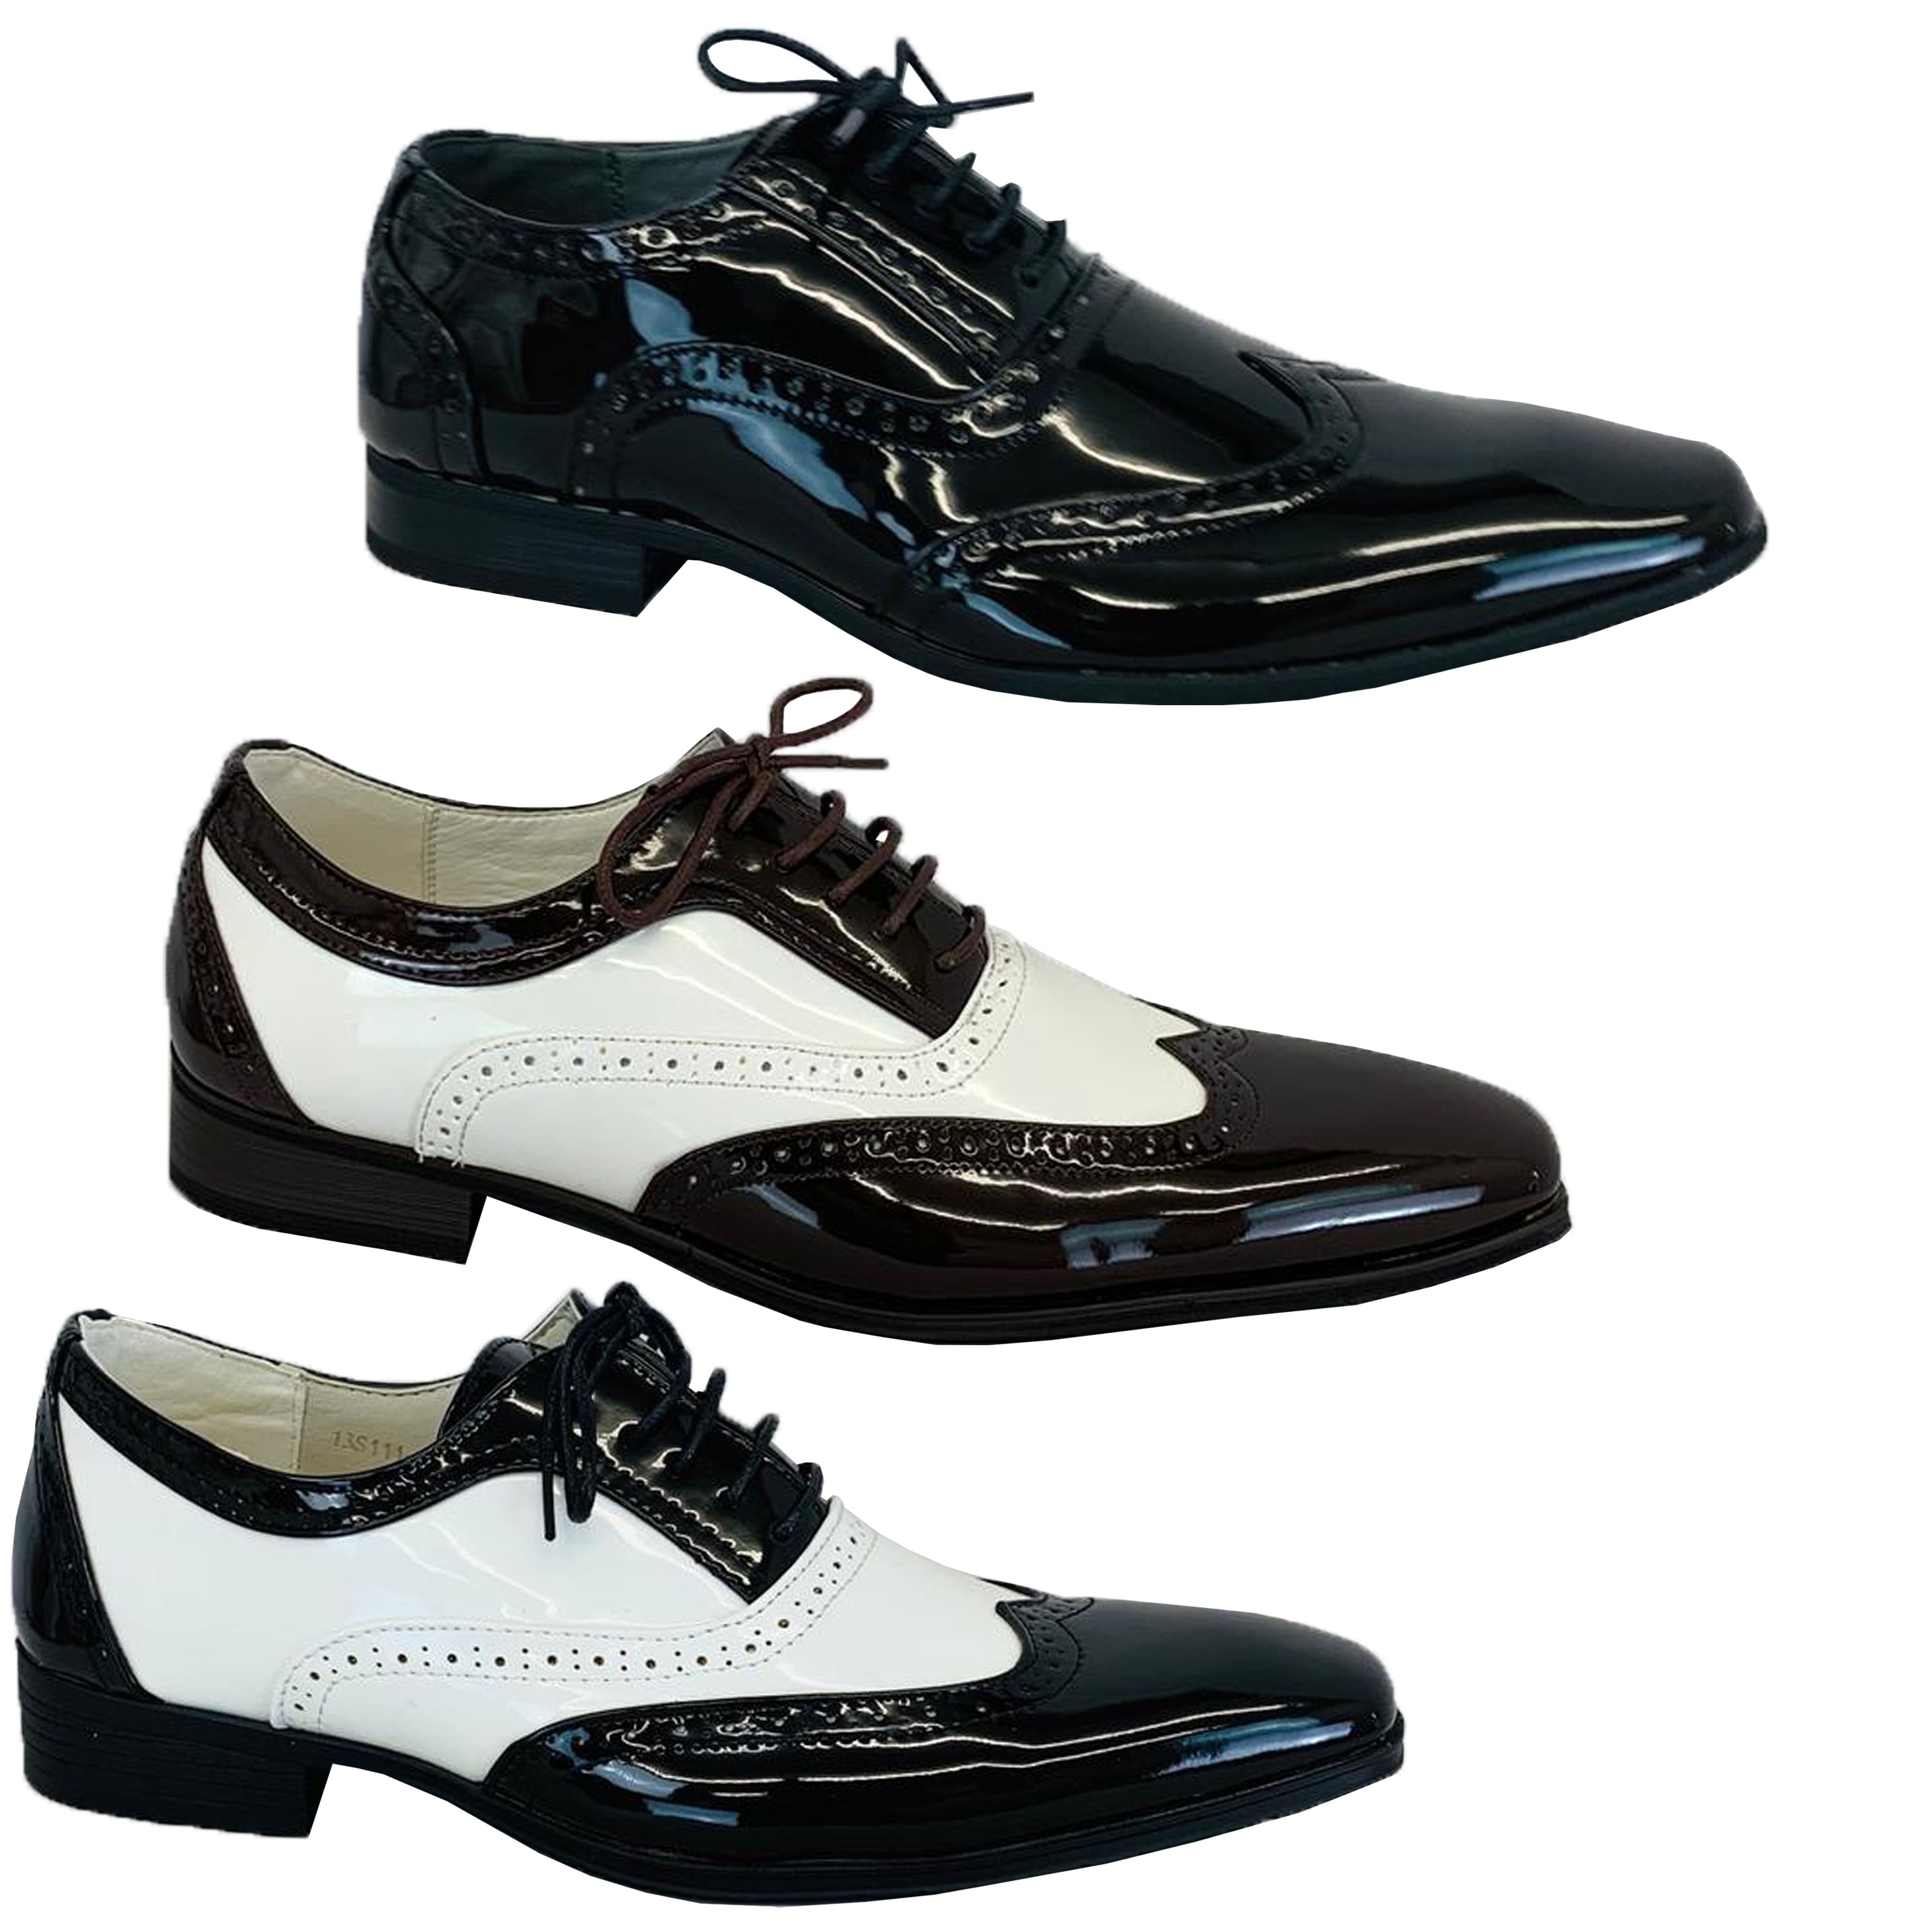 823c6f04348 Mens Italian Shoes Brogue Formal Two Tone Lace Up Patent Casual ...